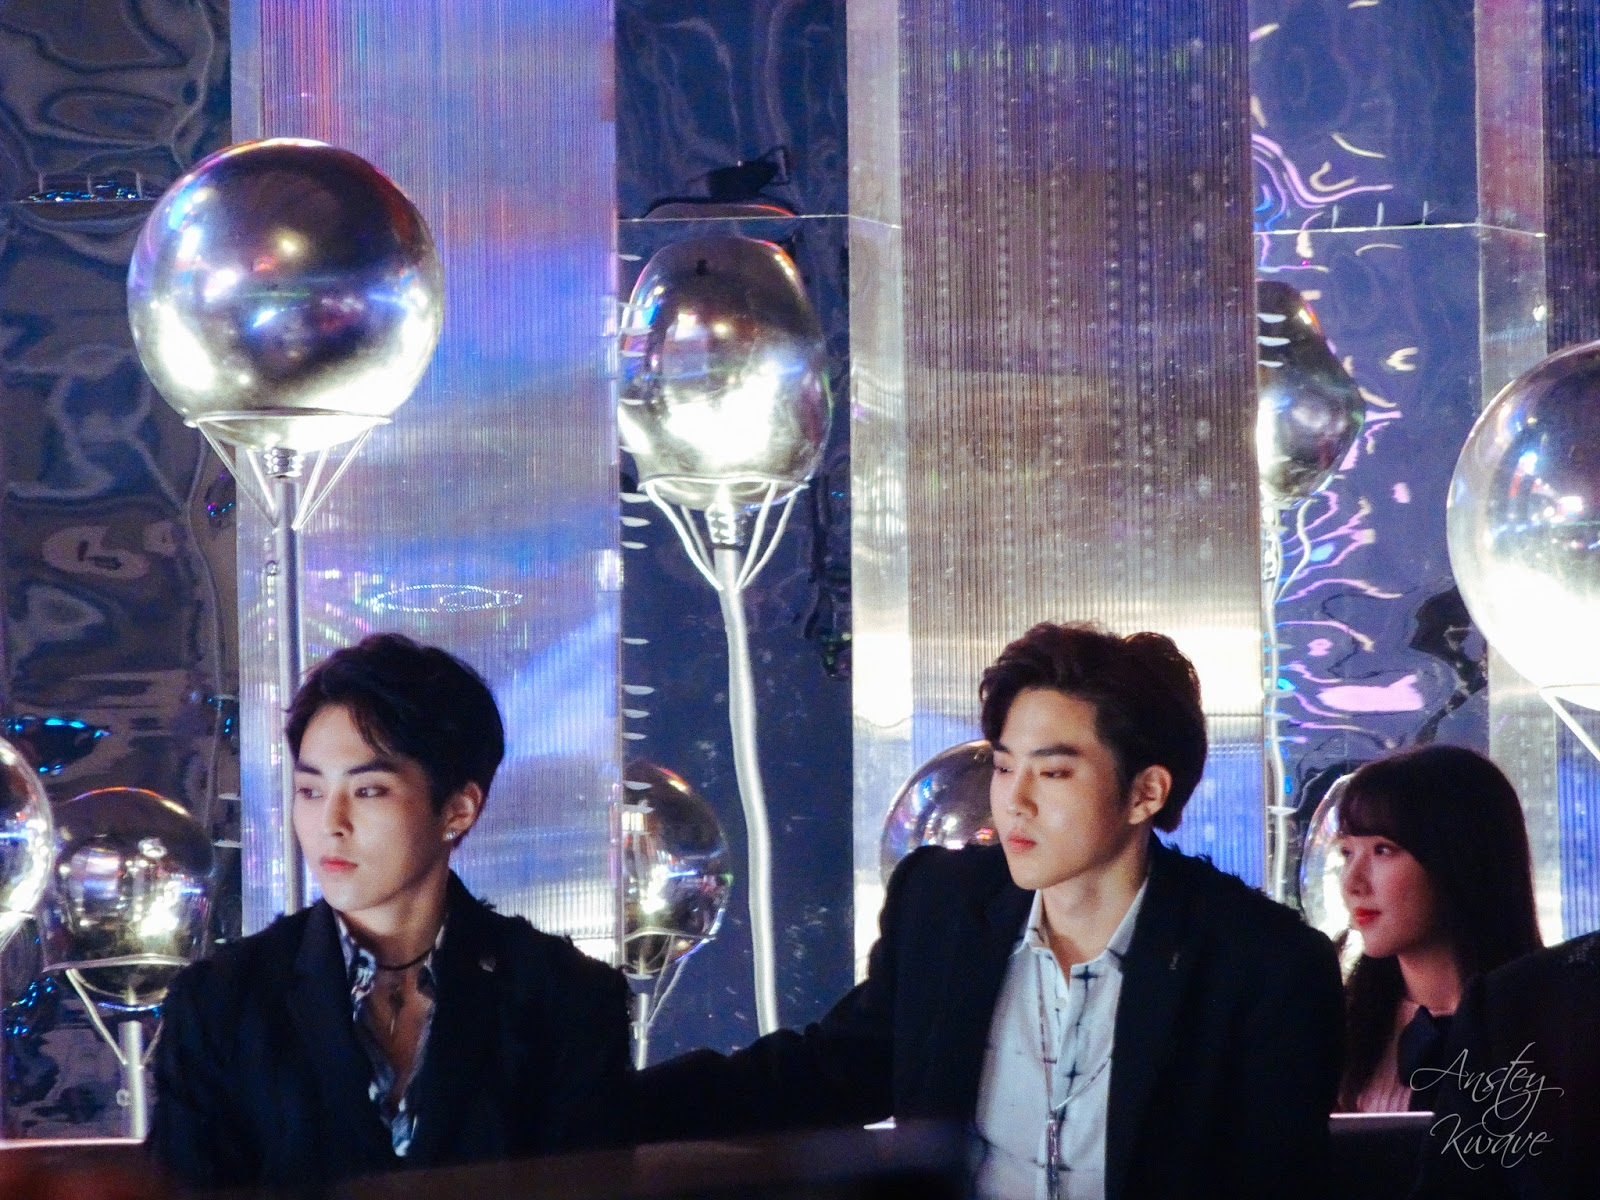 Xiumin and Suho, members of famous Korean k-pop boy band at Melon Music Awards (MMA) 2017 in Seoul, South Korea